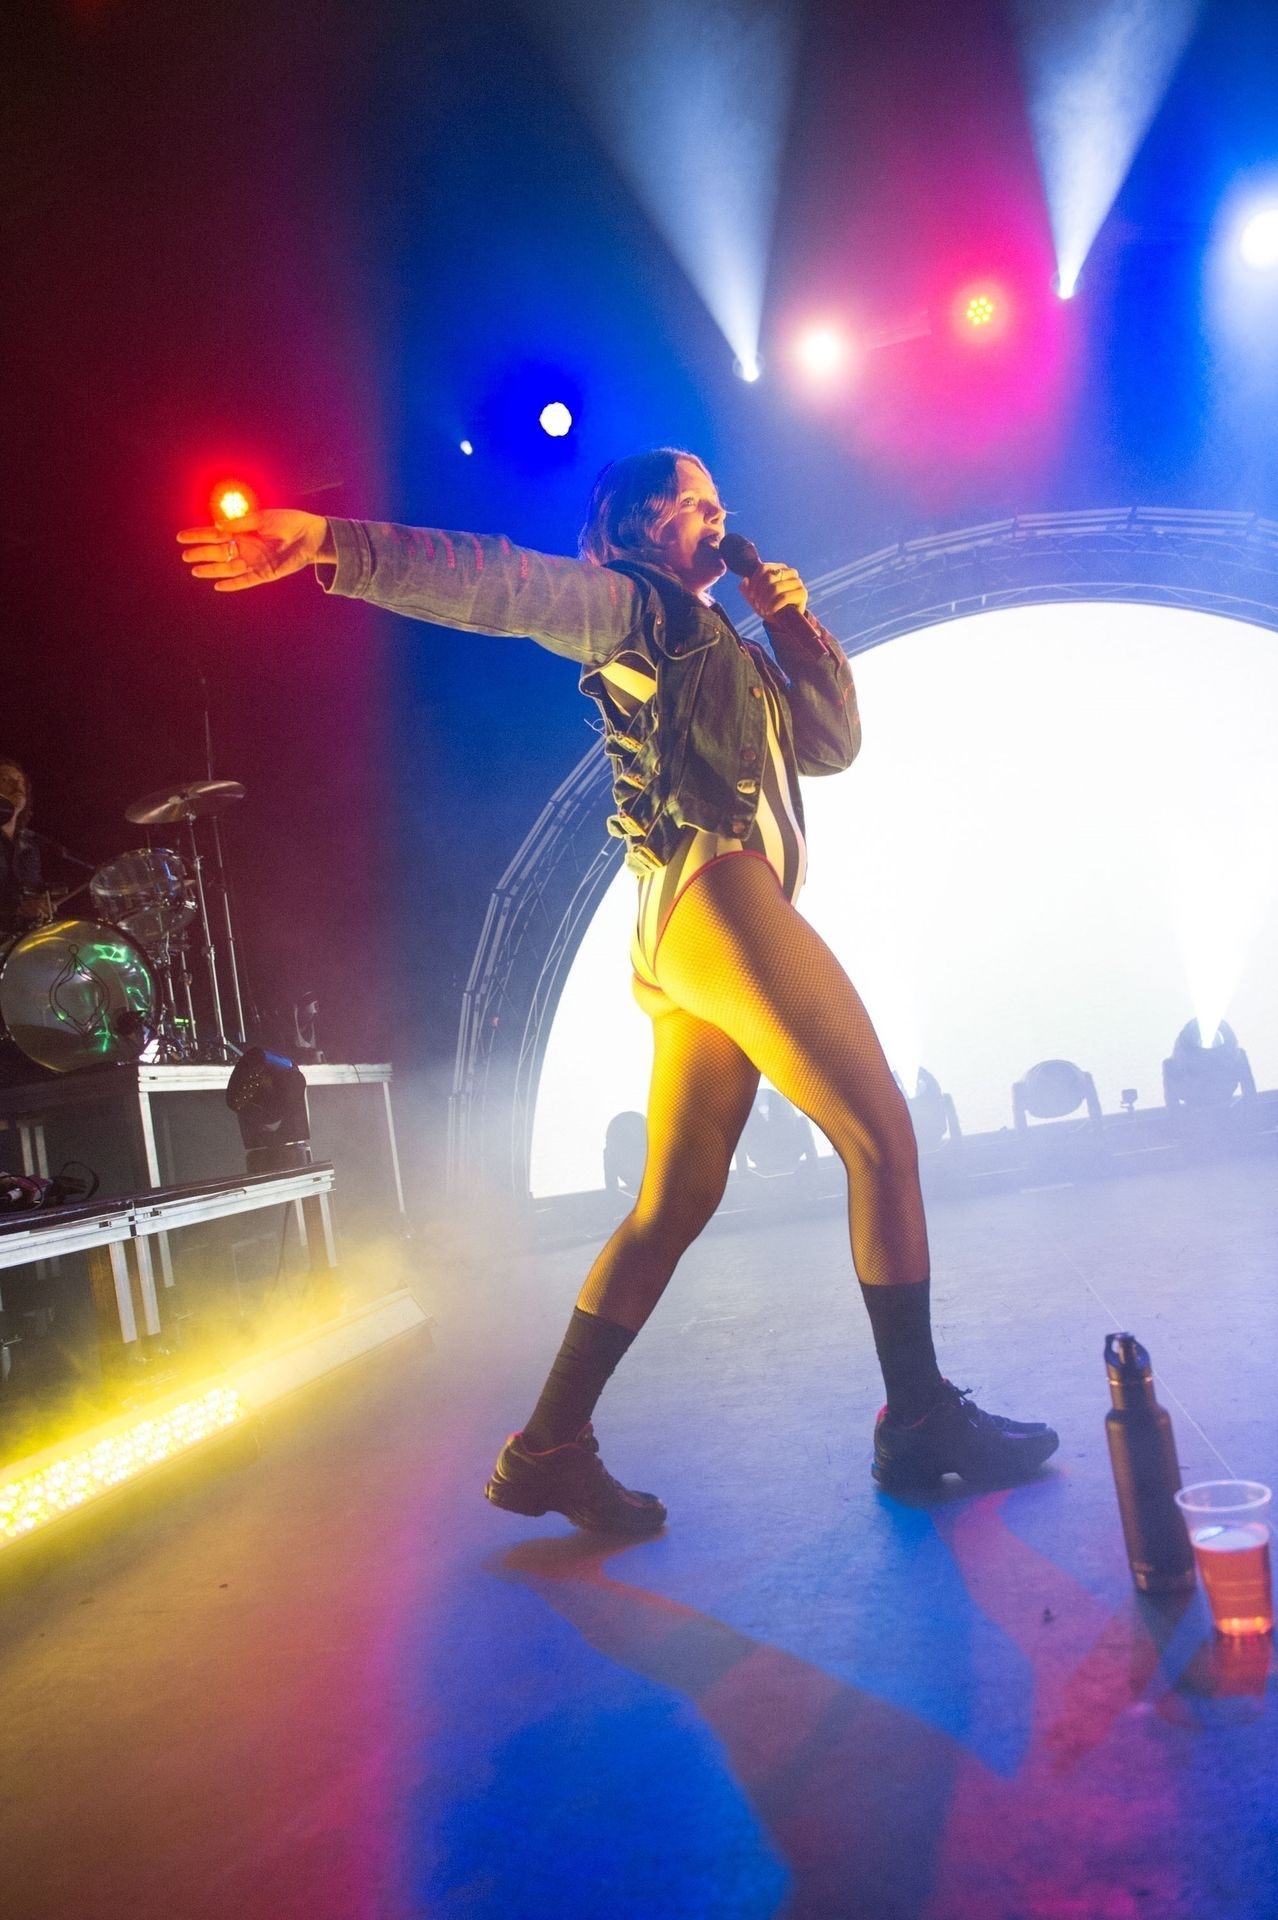 Tove Lo Is In Concert Performing Live At O2 Forum Kentish Town In London 0037